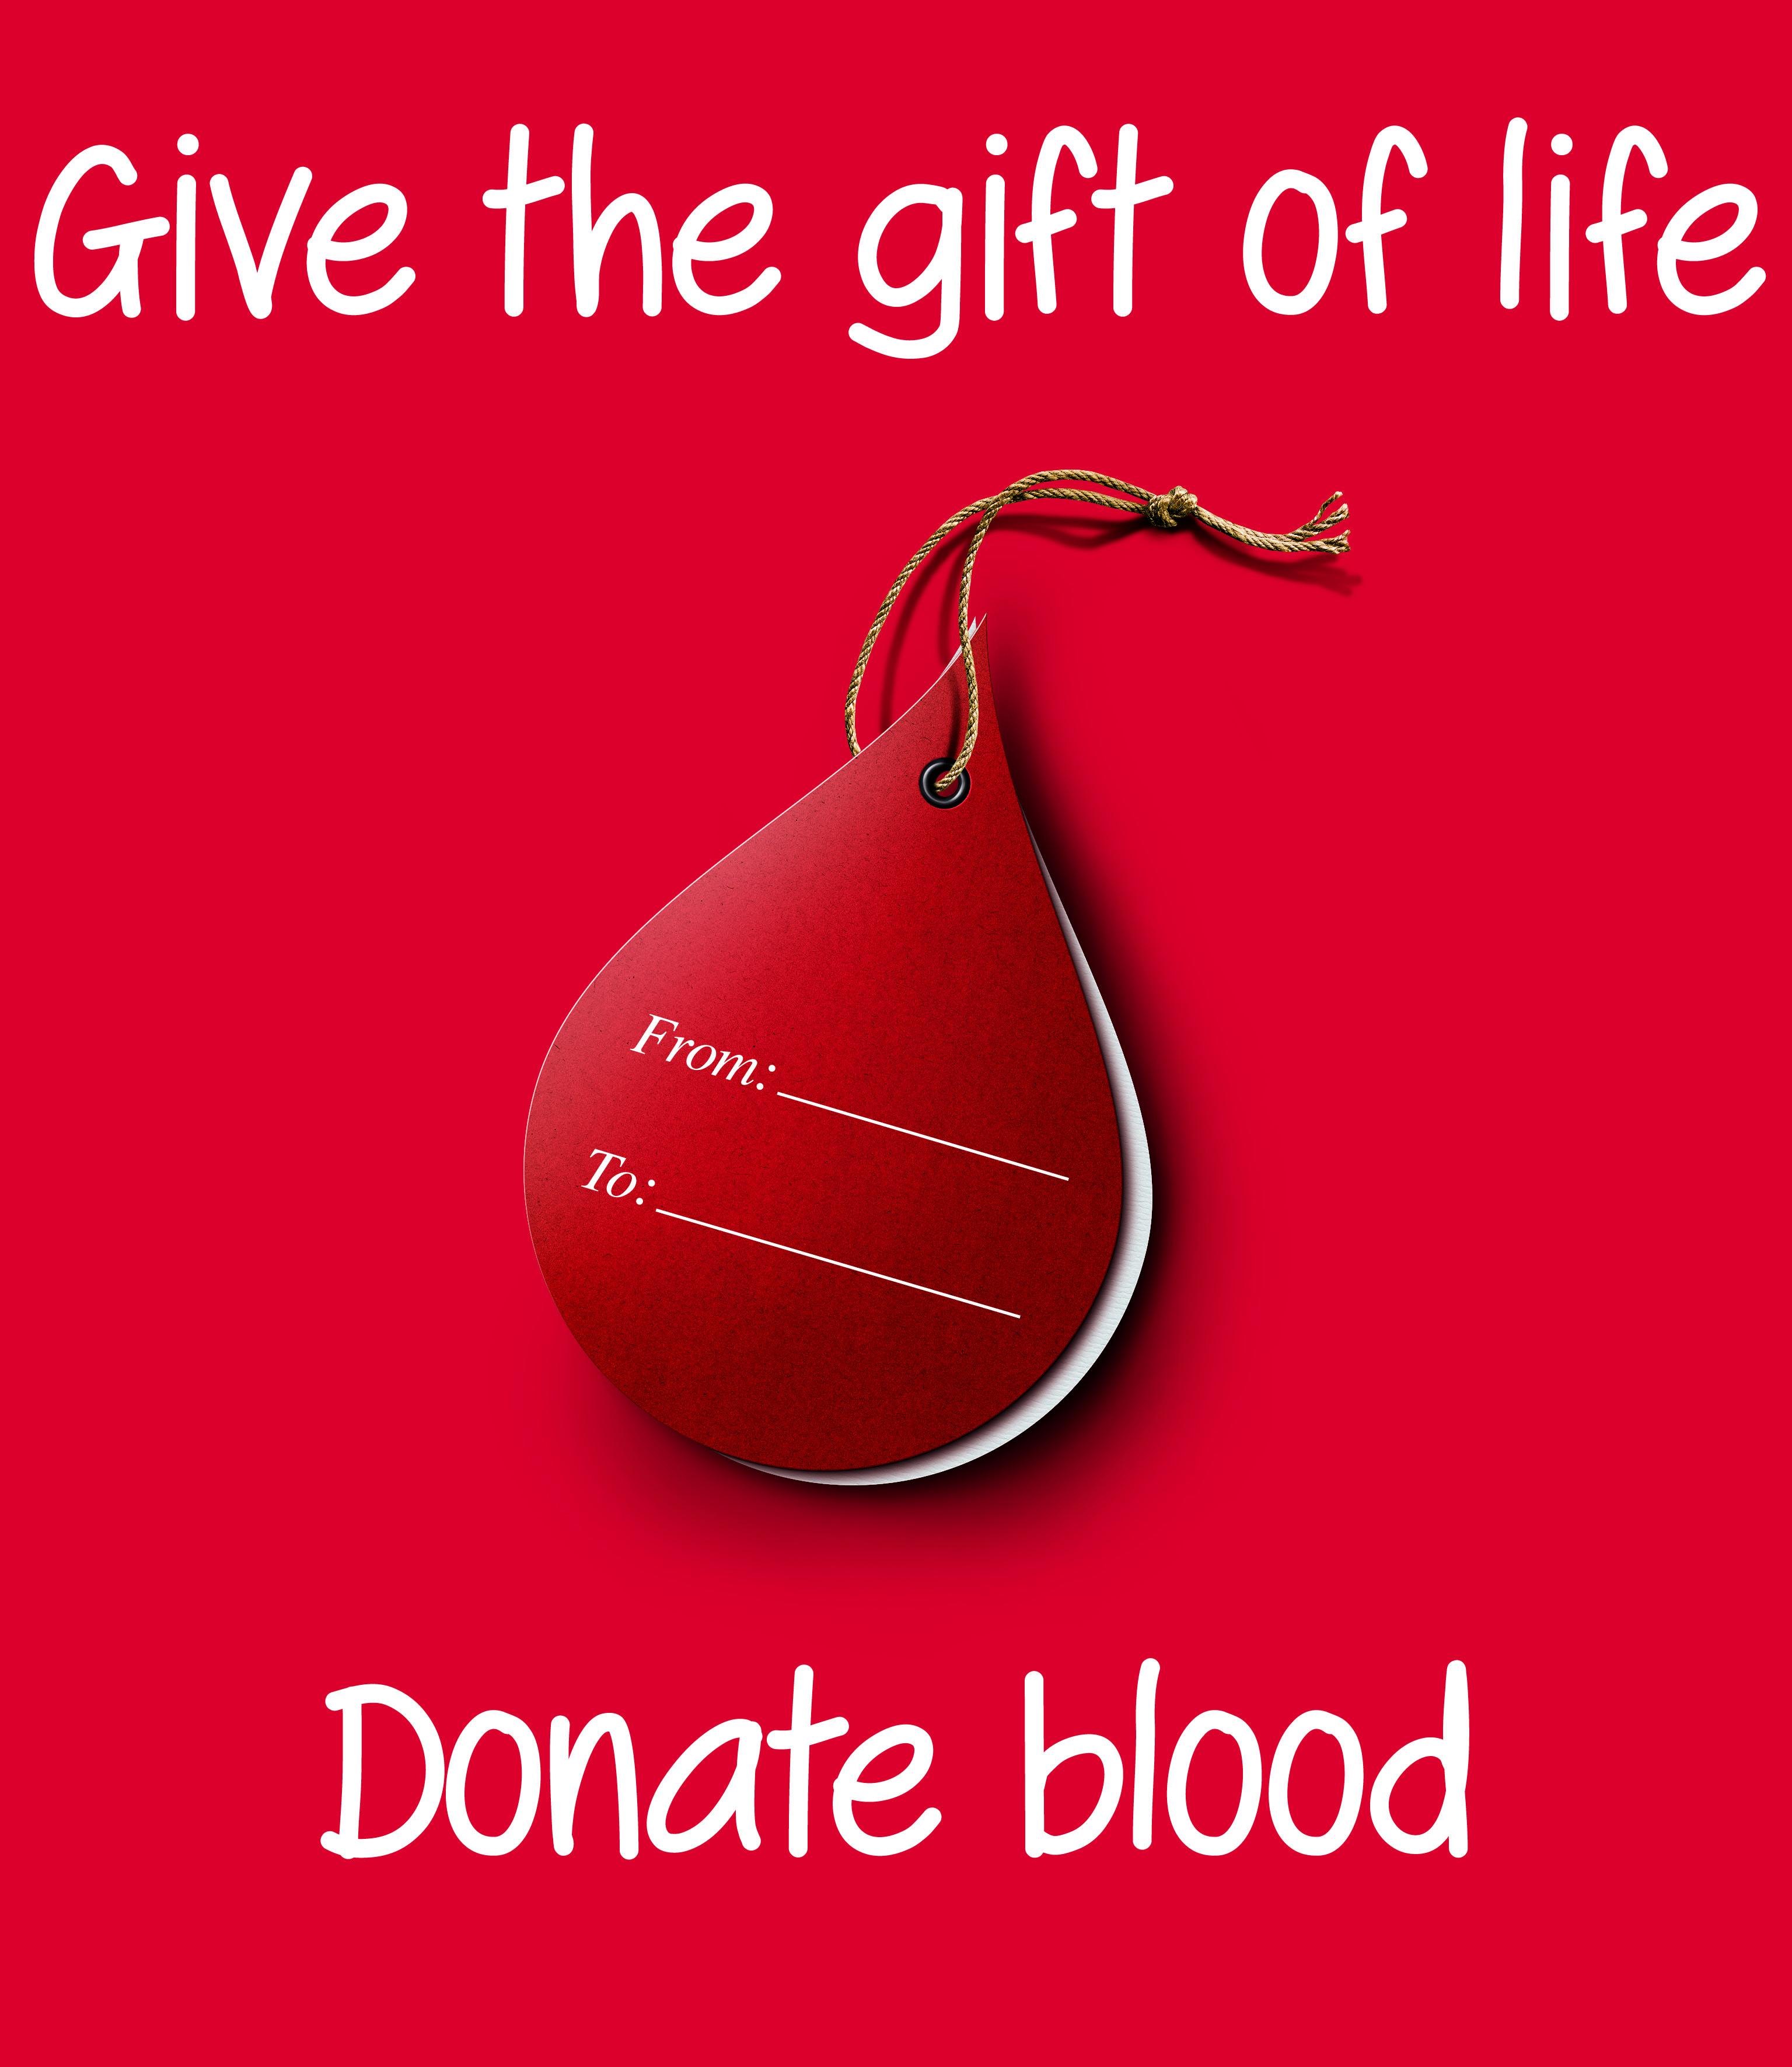 Give the gift of life donate blood world blood donor day greeting card m4hsunfo